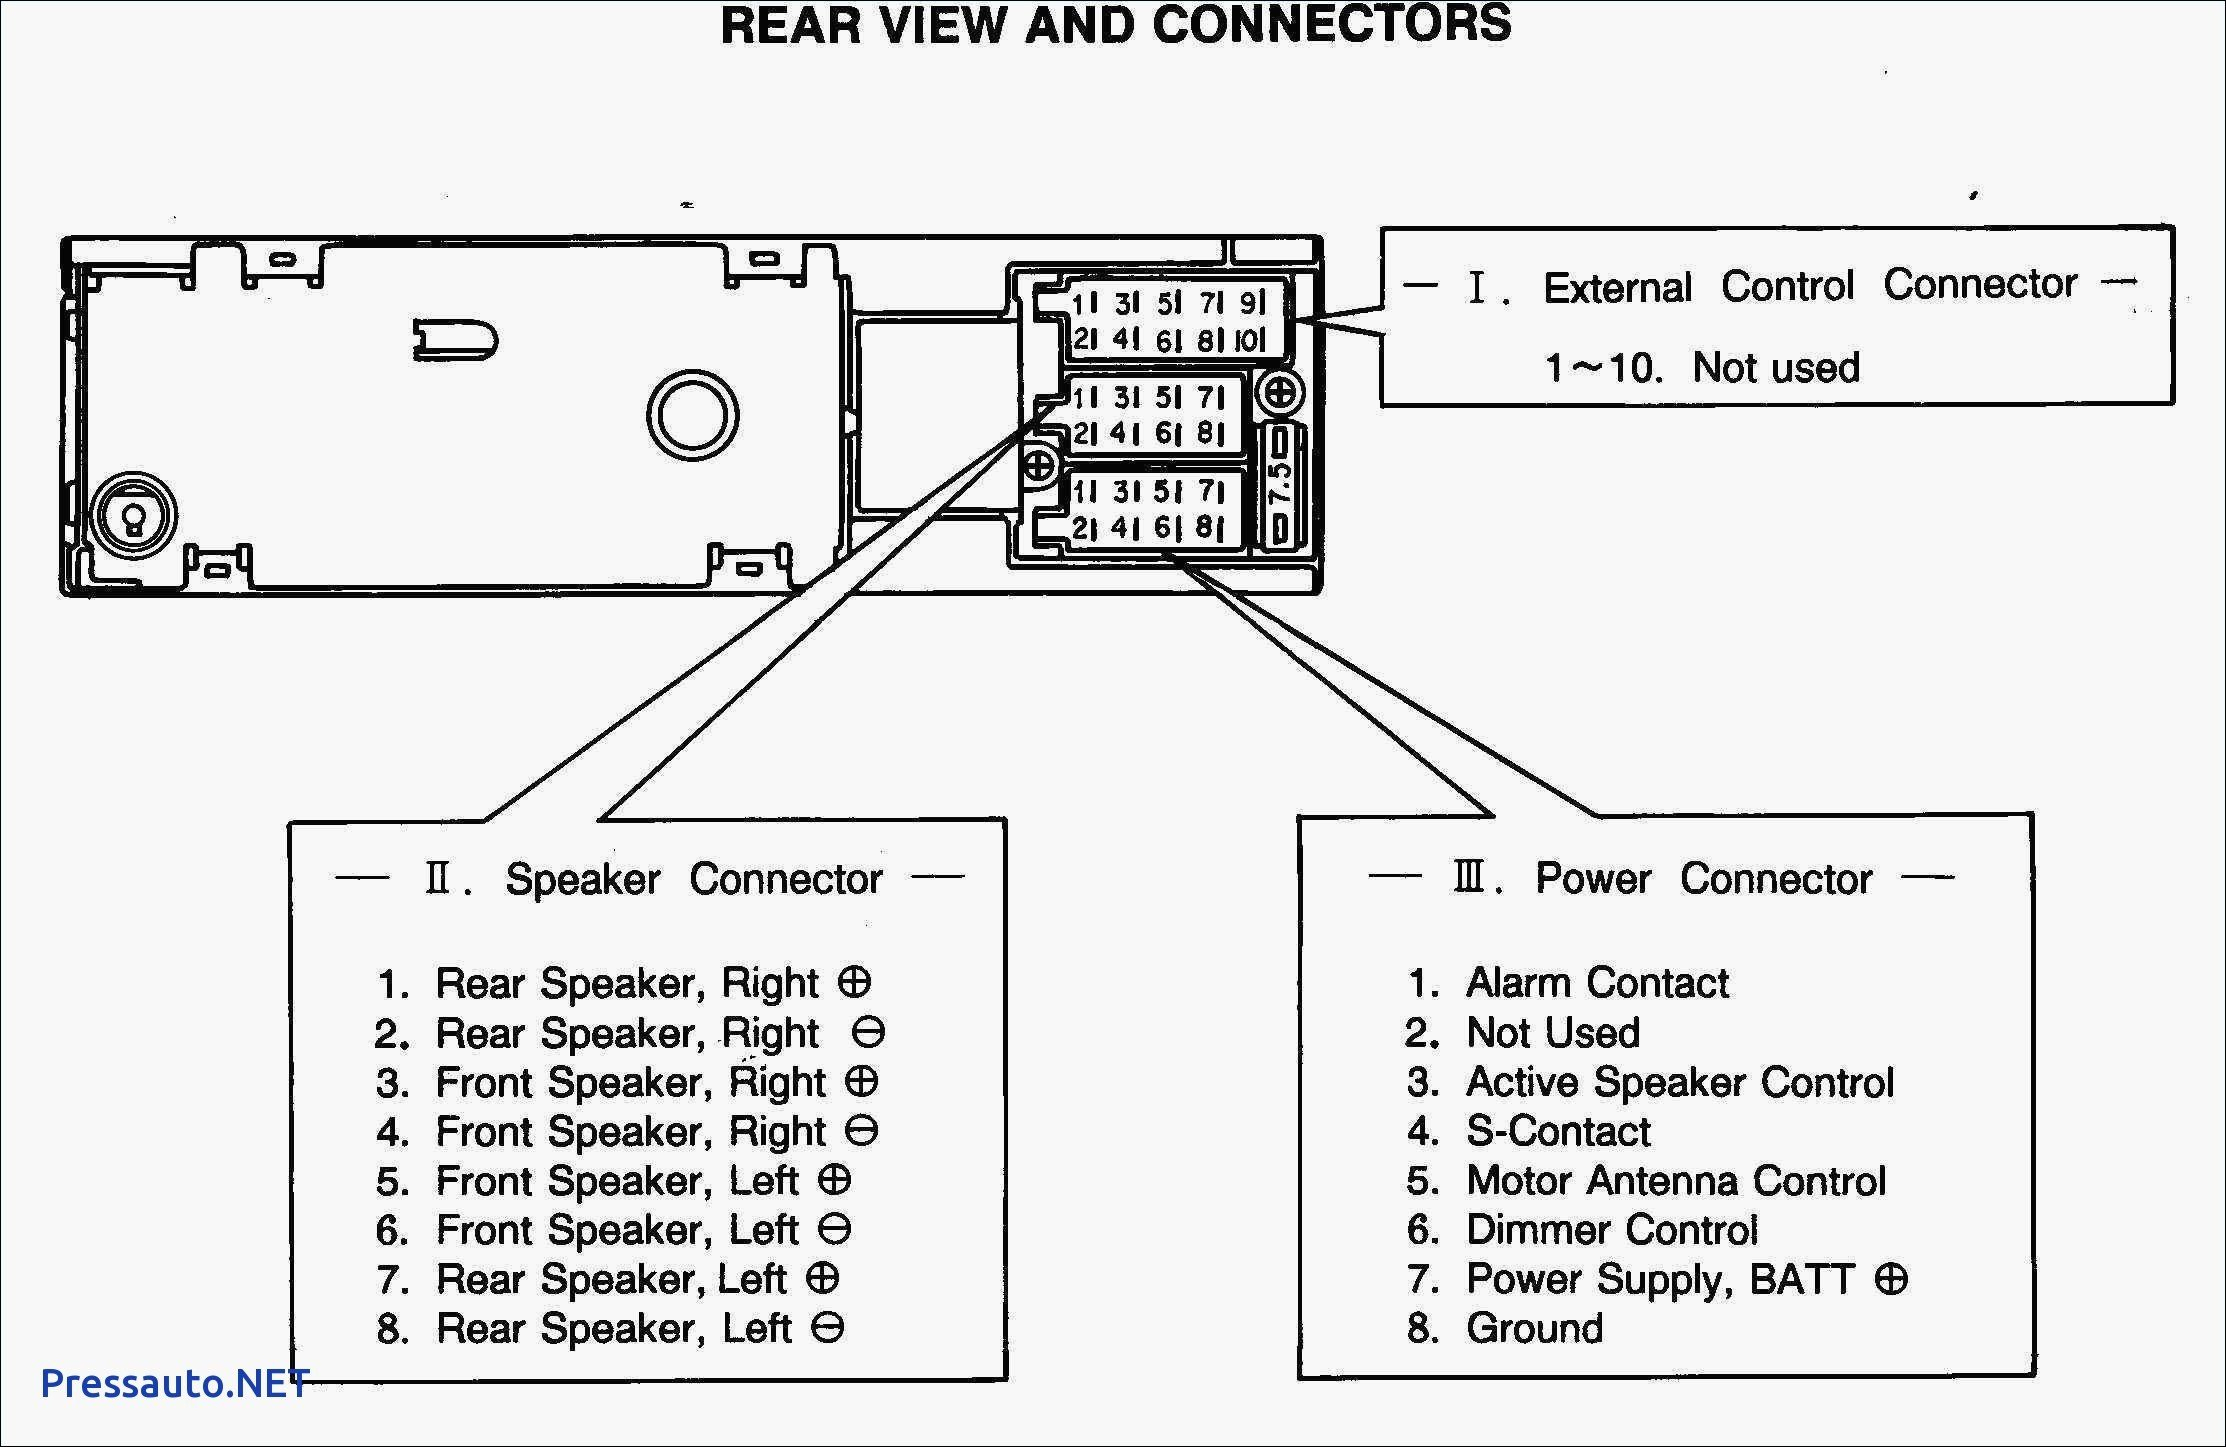 Hopkins Trailer Connector Wiring Diagram Awesome Ez Load Trailer - Hopkins Trailer Plug Wiring Diagram